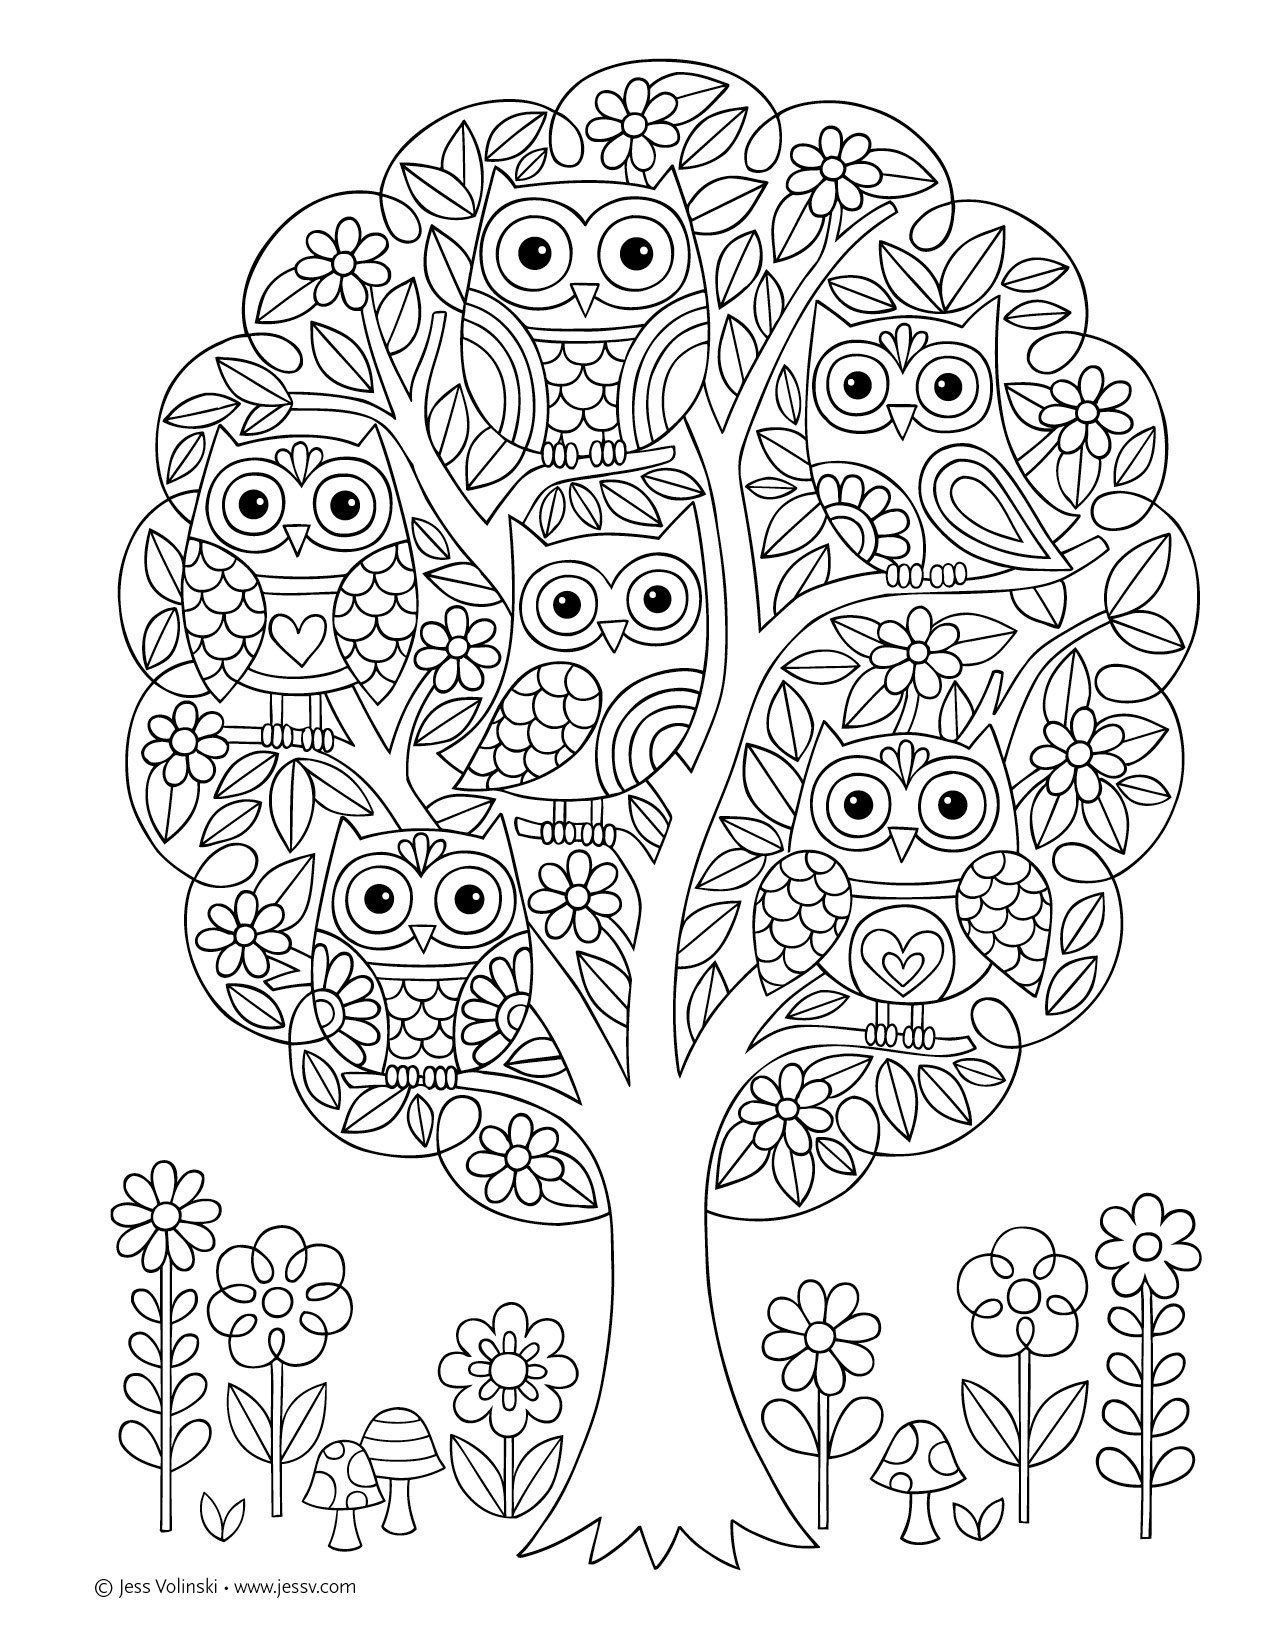 Super Cute Coloring Pages Notebook Doodles Super Cute Coloring Activity Book Jess Owl Coloring Pages Animal Coloring Pages Cute Coloring Pages